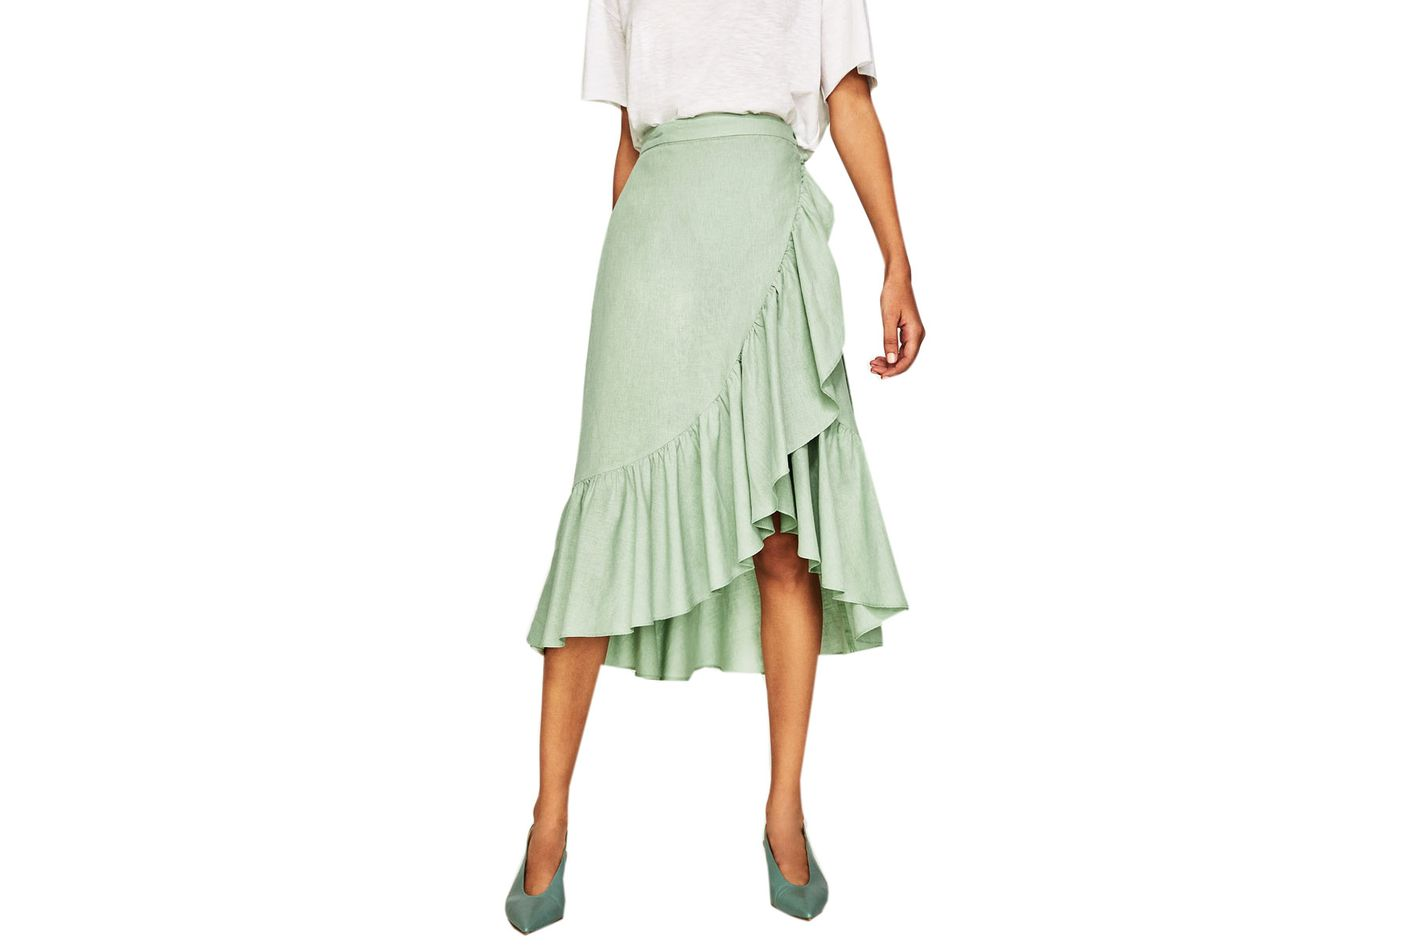 Zara Ruffled Wrap Skirt